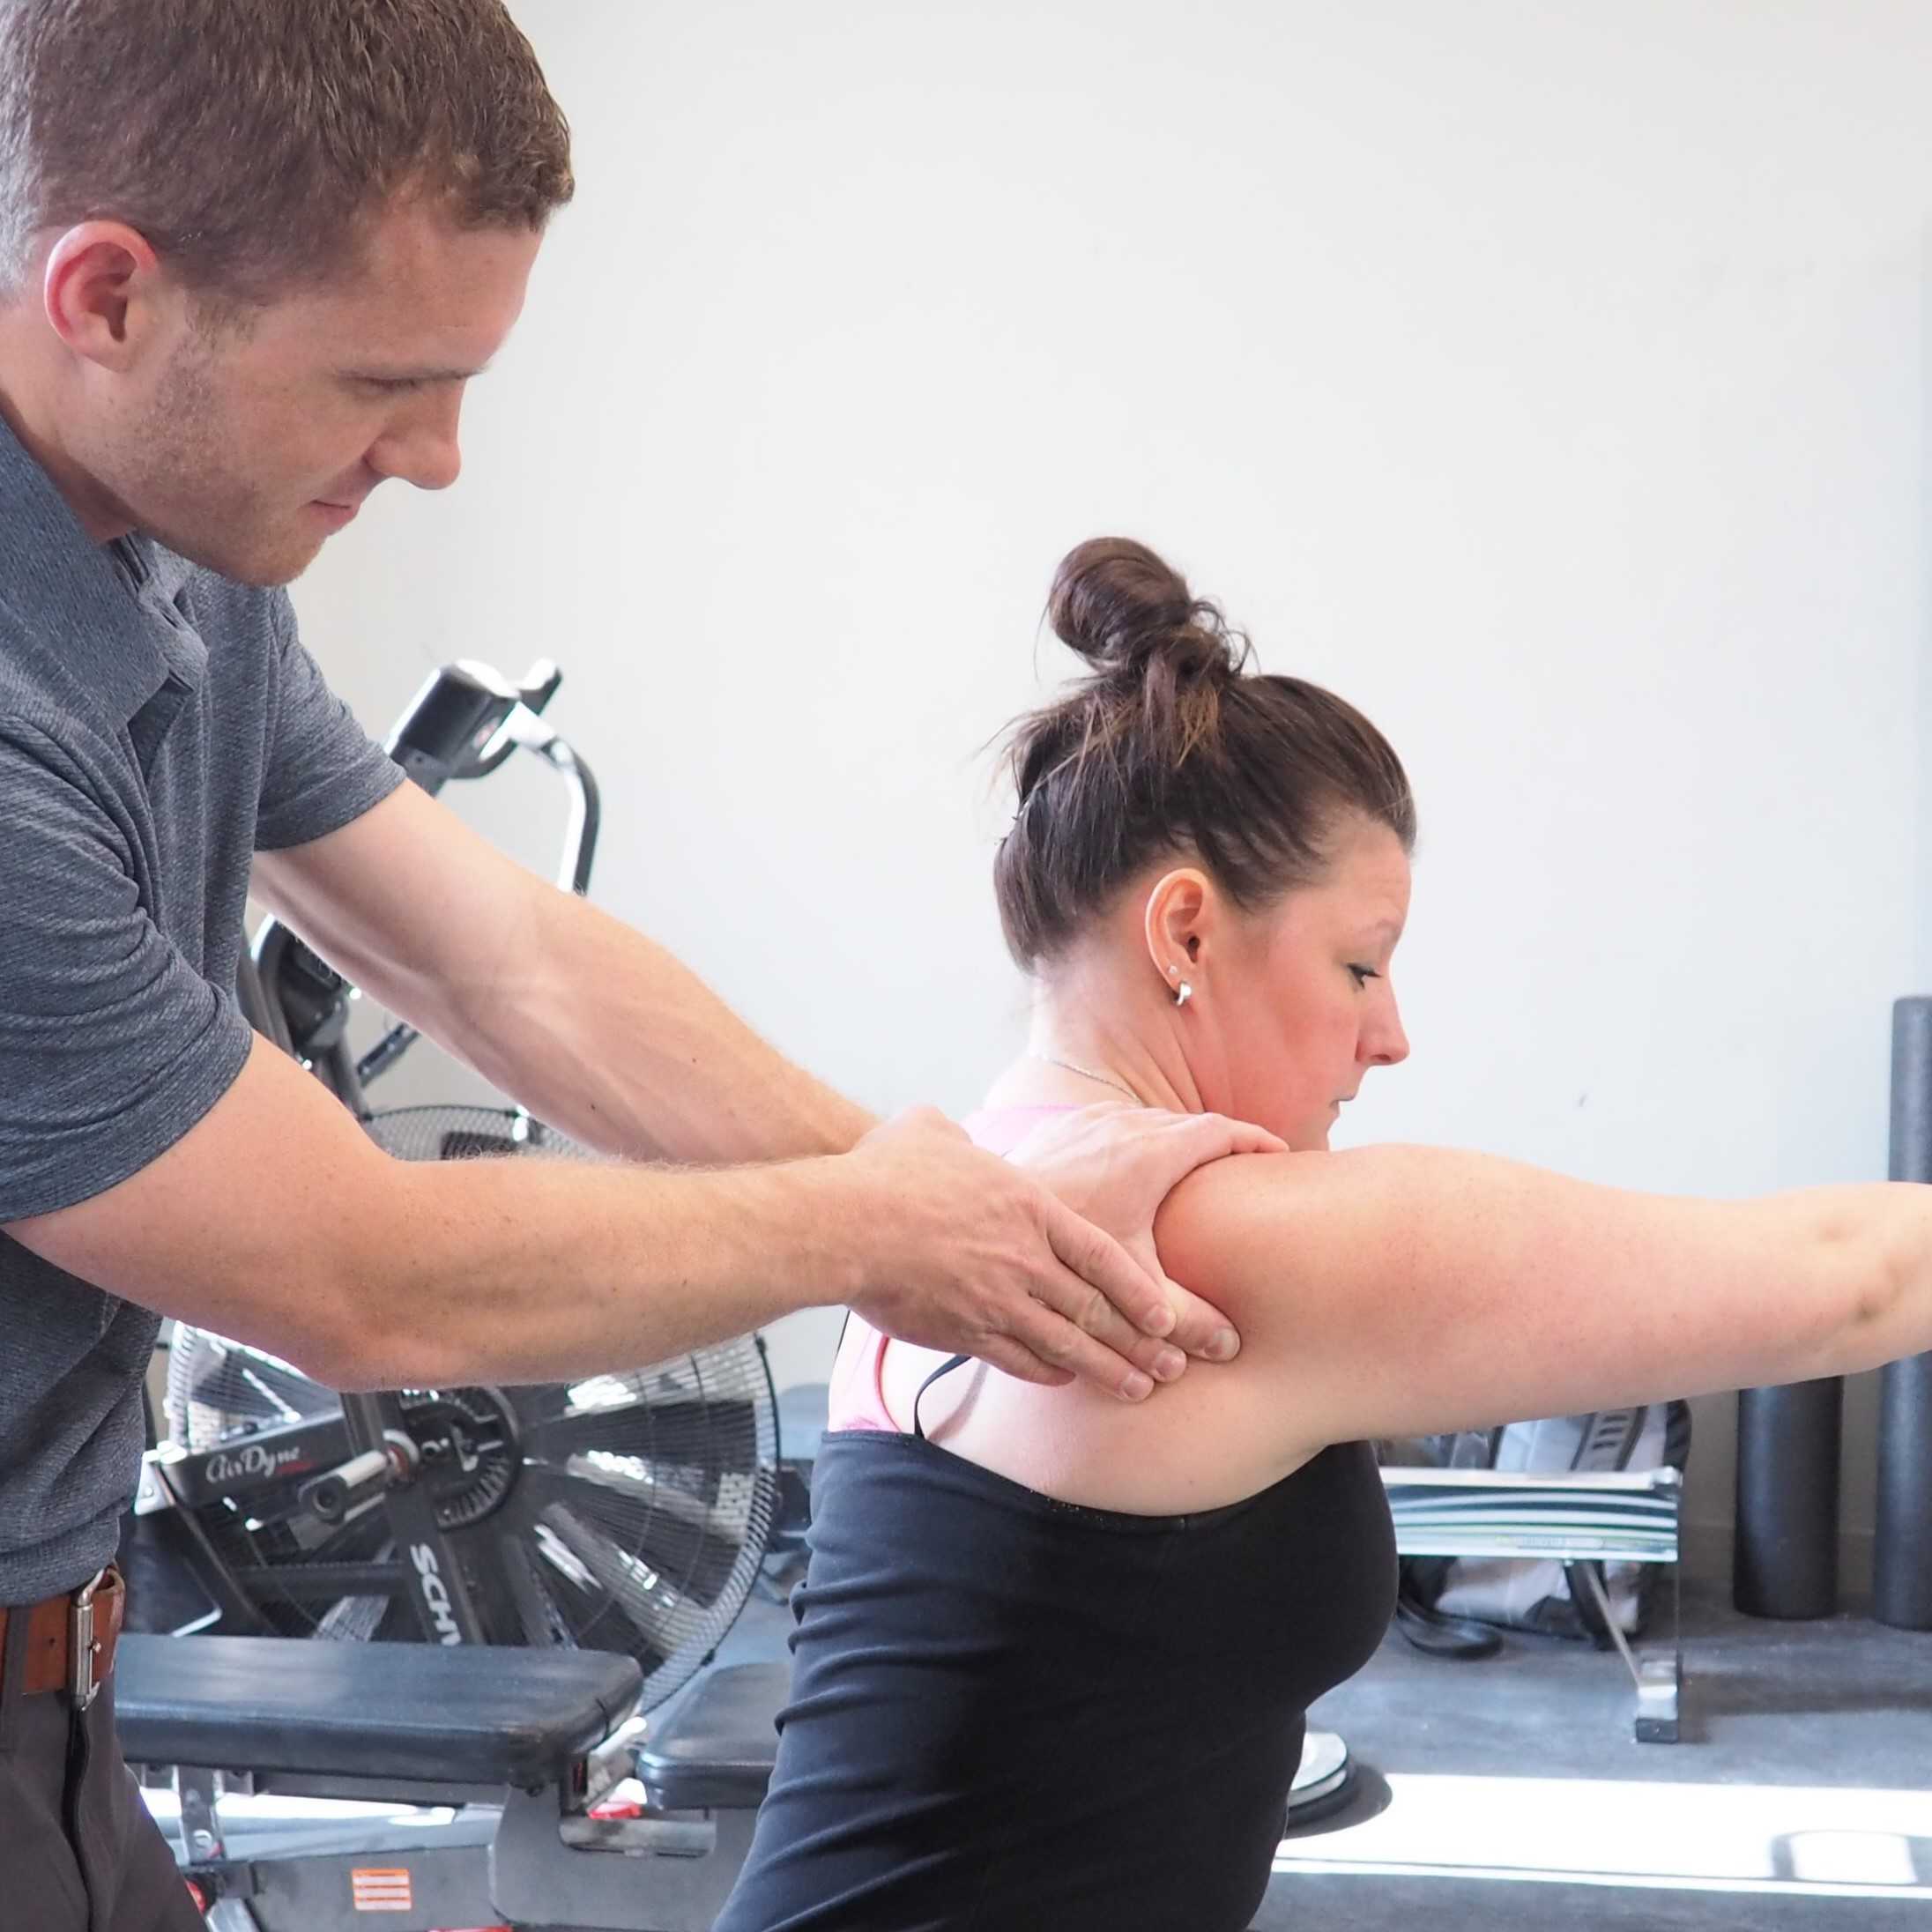 Manual Therapy A.R.T. - This technique uses the provider's hands to evaluate the texture, tightness and movement of soft tissues. Abnormal tissues are treated by combining precisely directed tension with very specific patient movements.